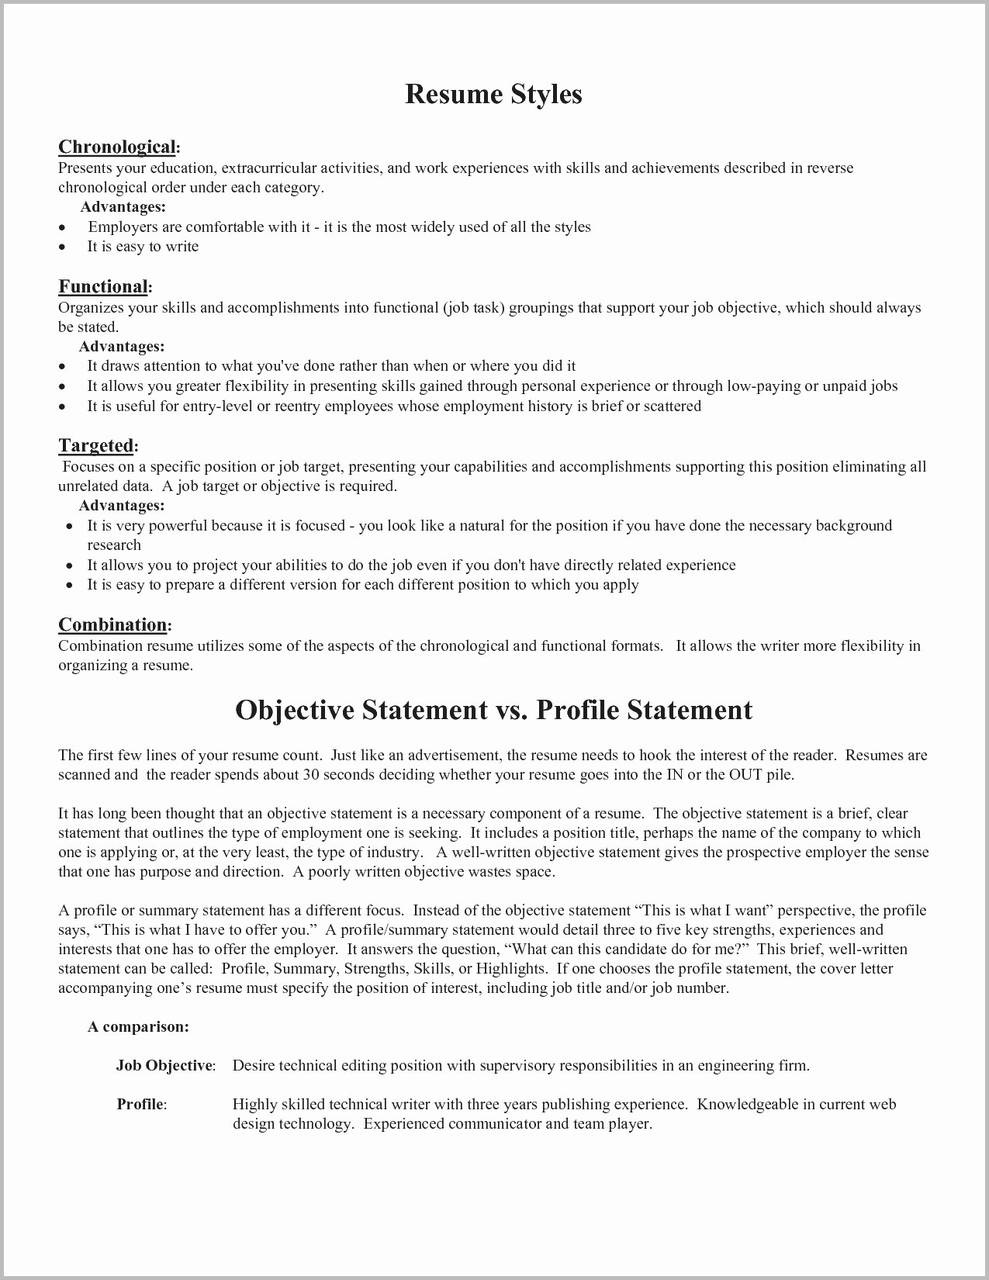 Extracurricular Resume - Resume Templates In Minutes Part 4